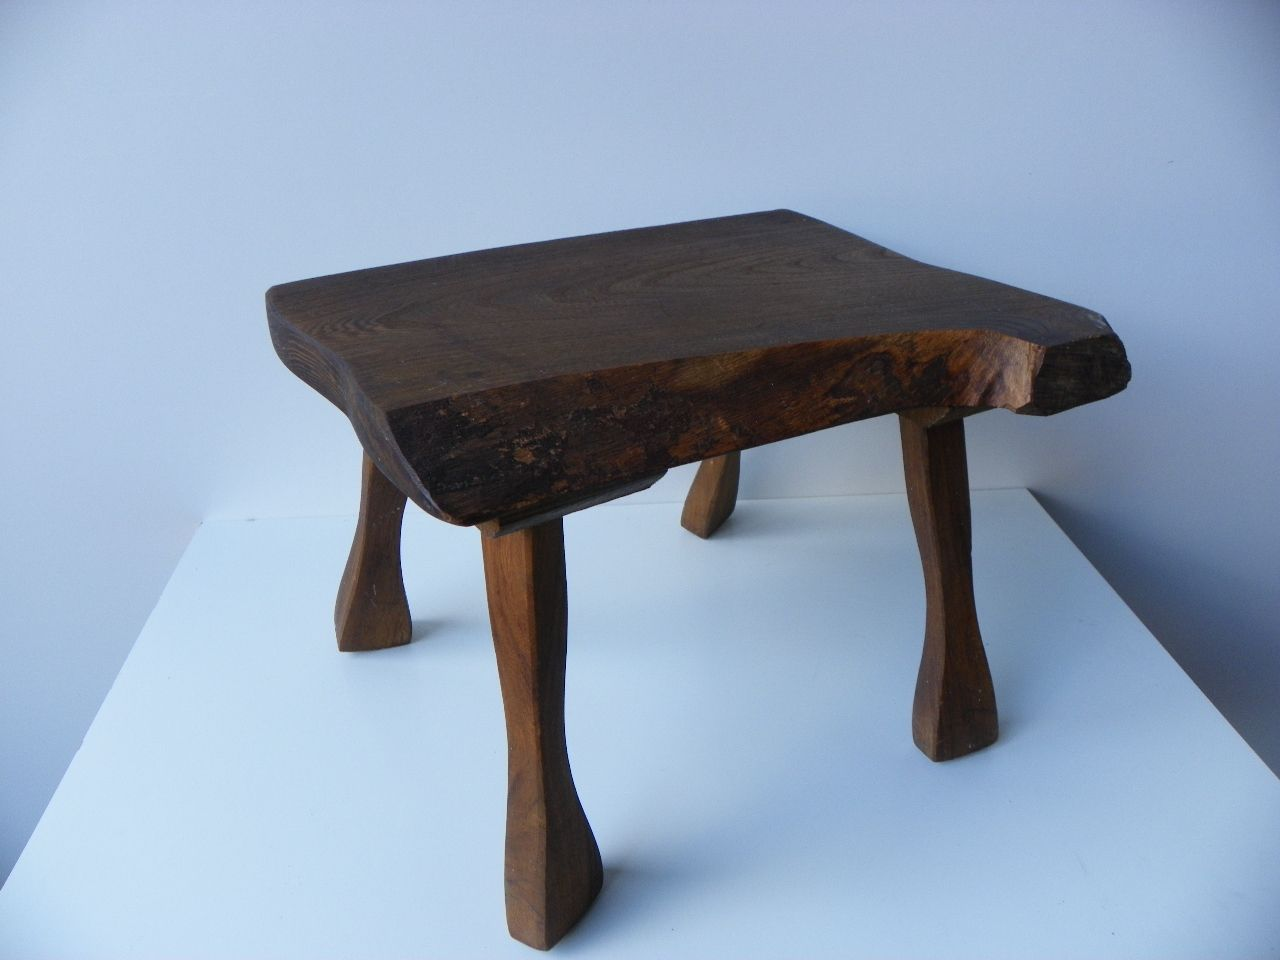 Vintage Dutch Coffee Table Or Stool 1950s For Sale At Pamono